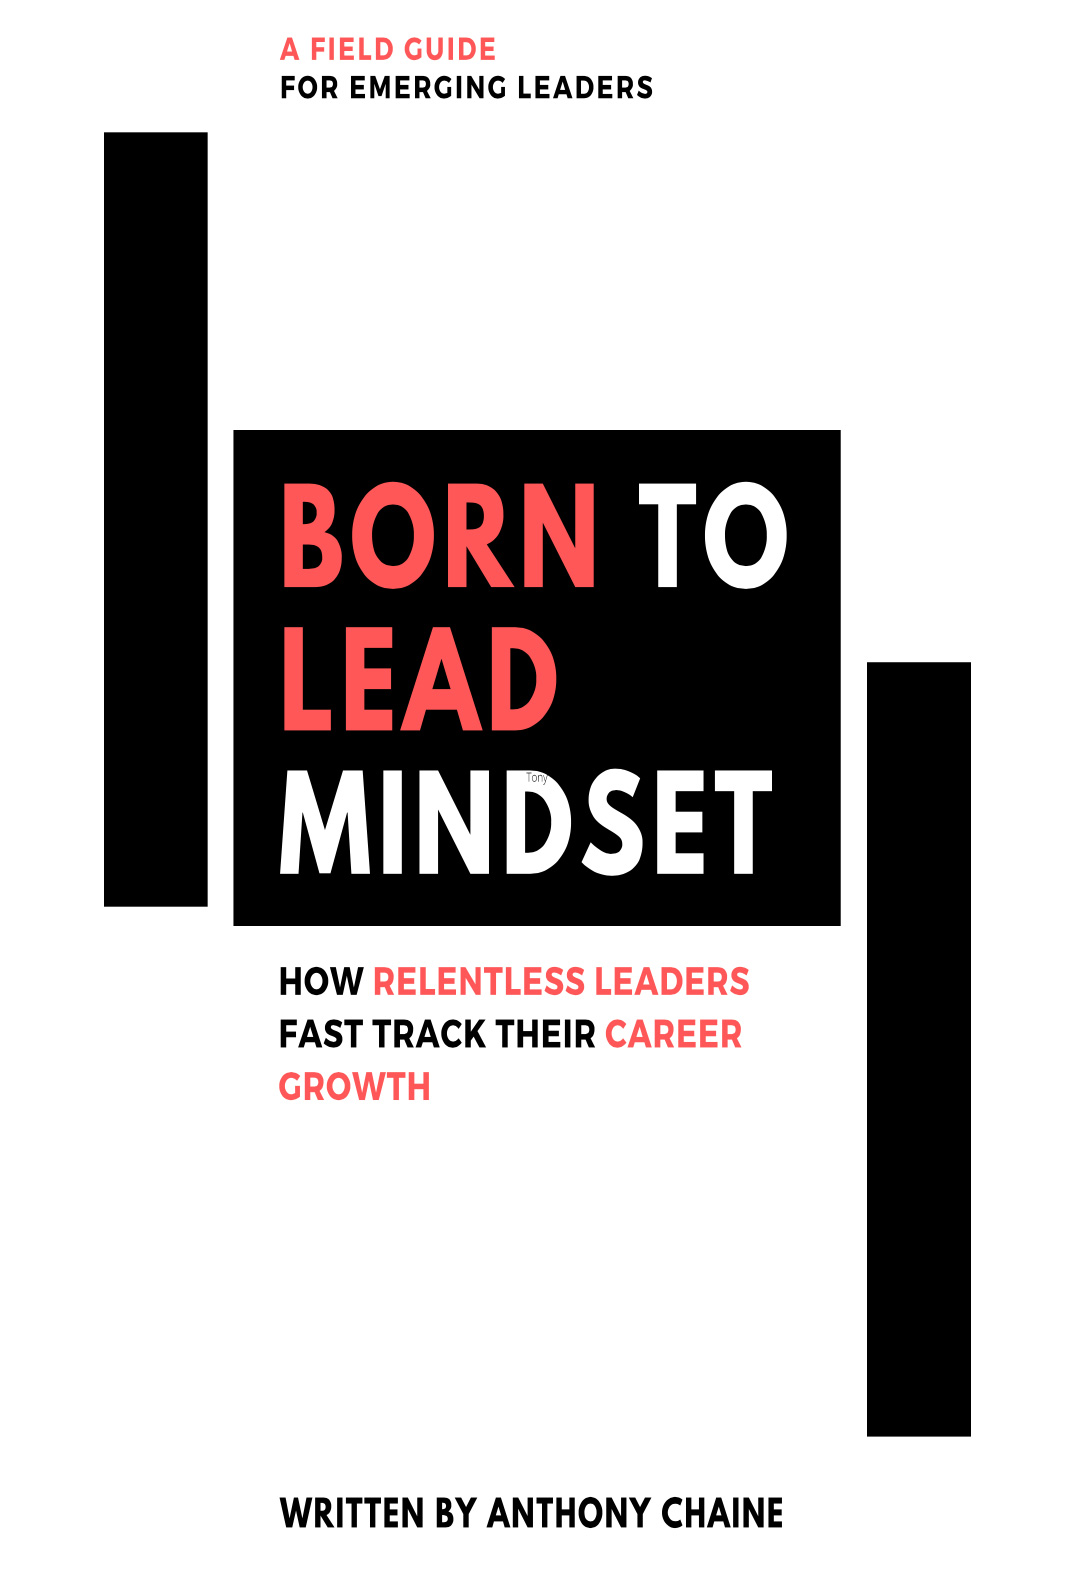 Born to Lead Mindset